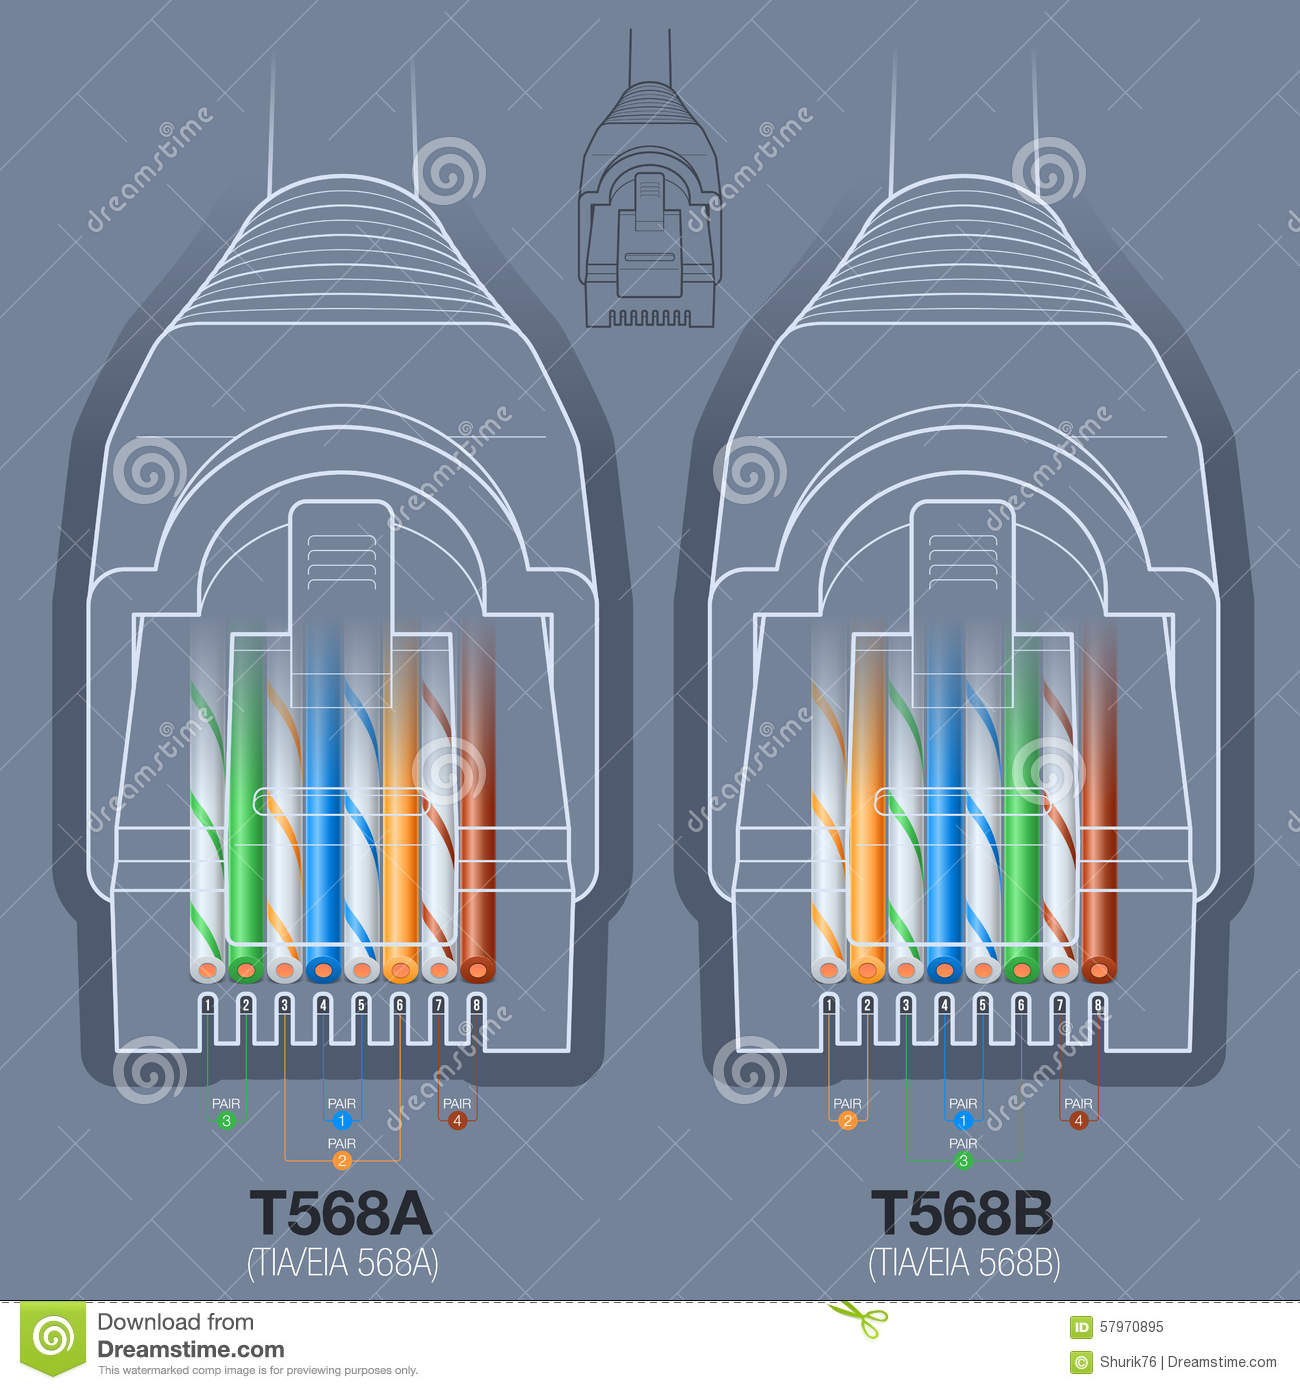 Network Cable Connector Wiring Diagram Stock Vector - Illustration - Network Cable Wiring Diagram